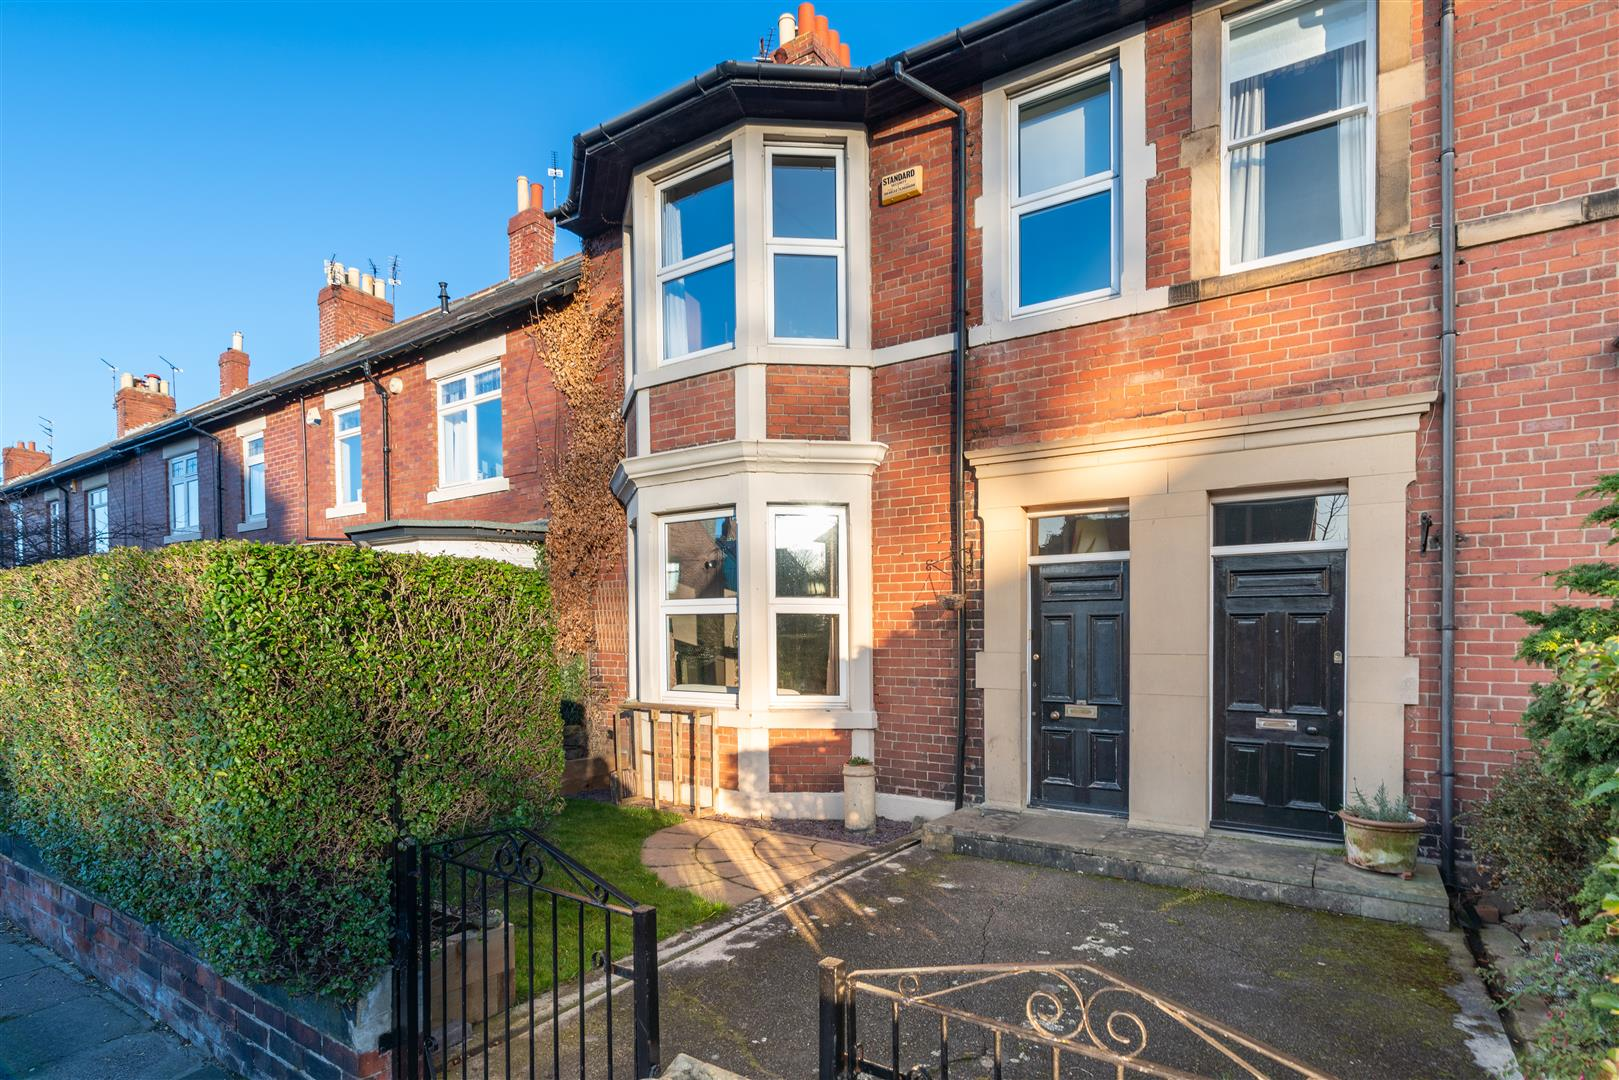 5 bed terraced house for sale in Newcastle Upon Tyne, NE3 1UB  - Property Image 1